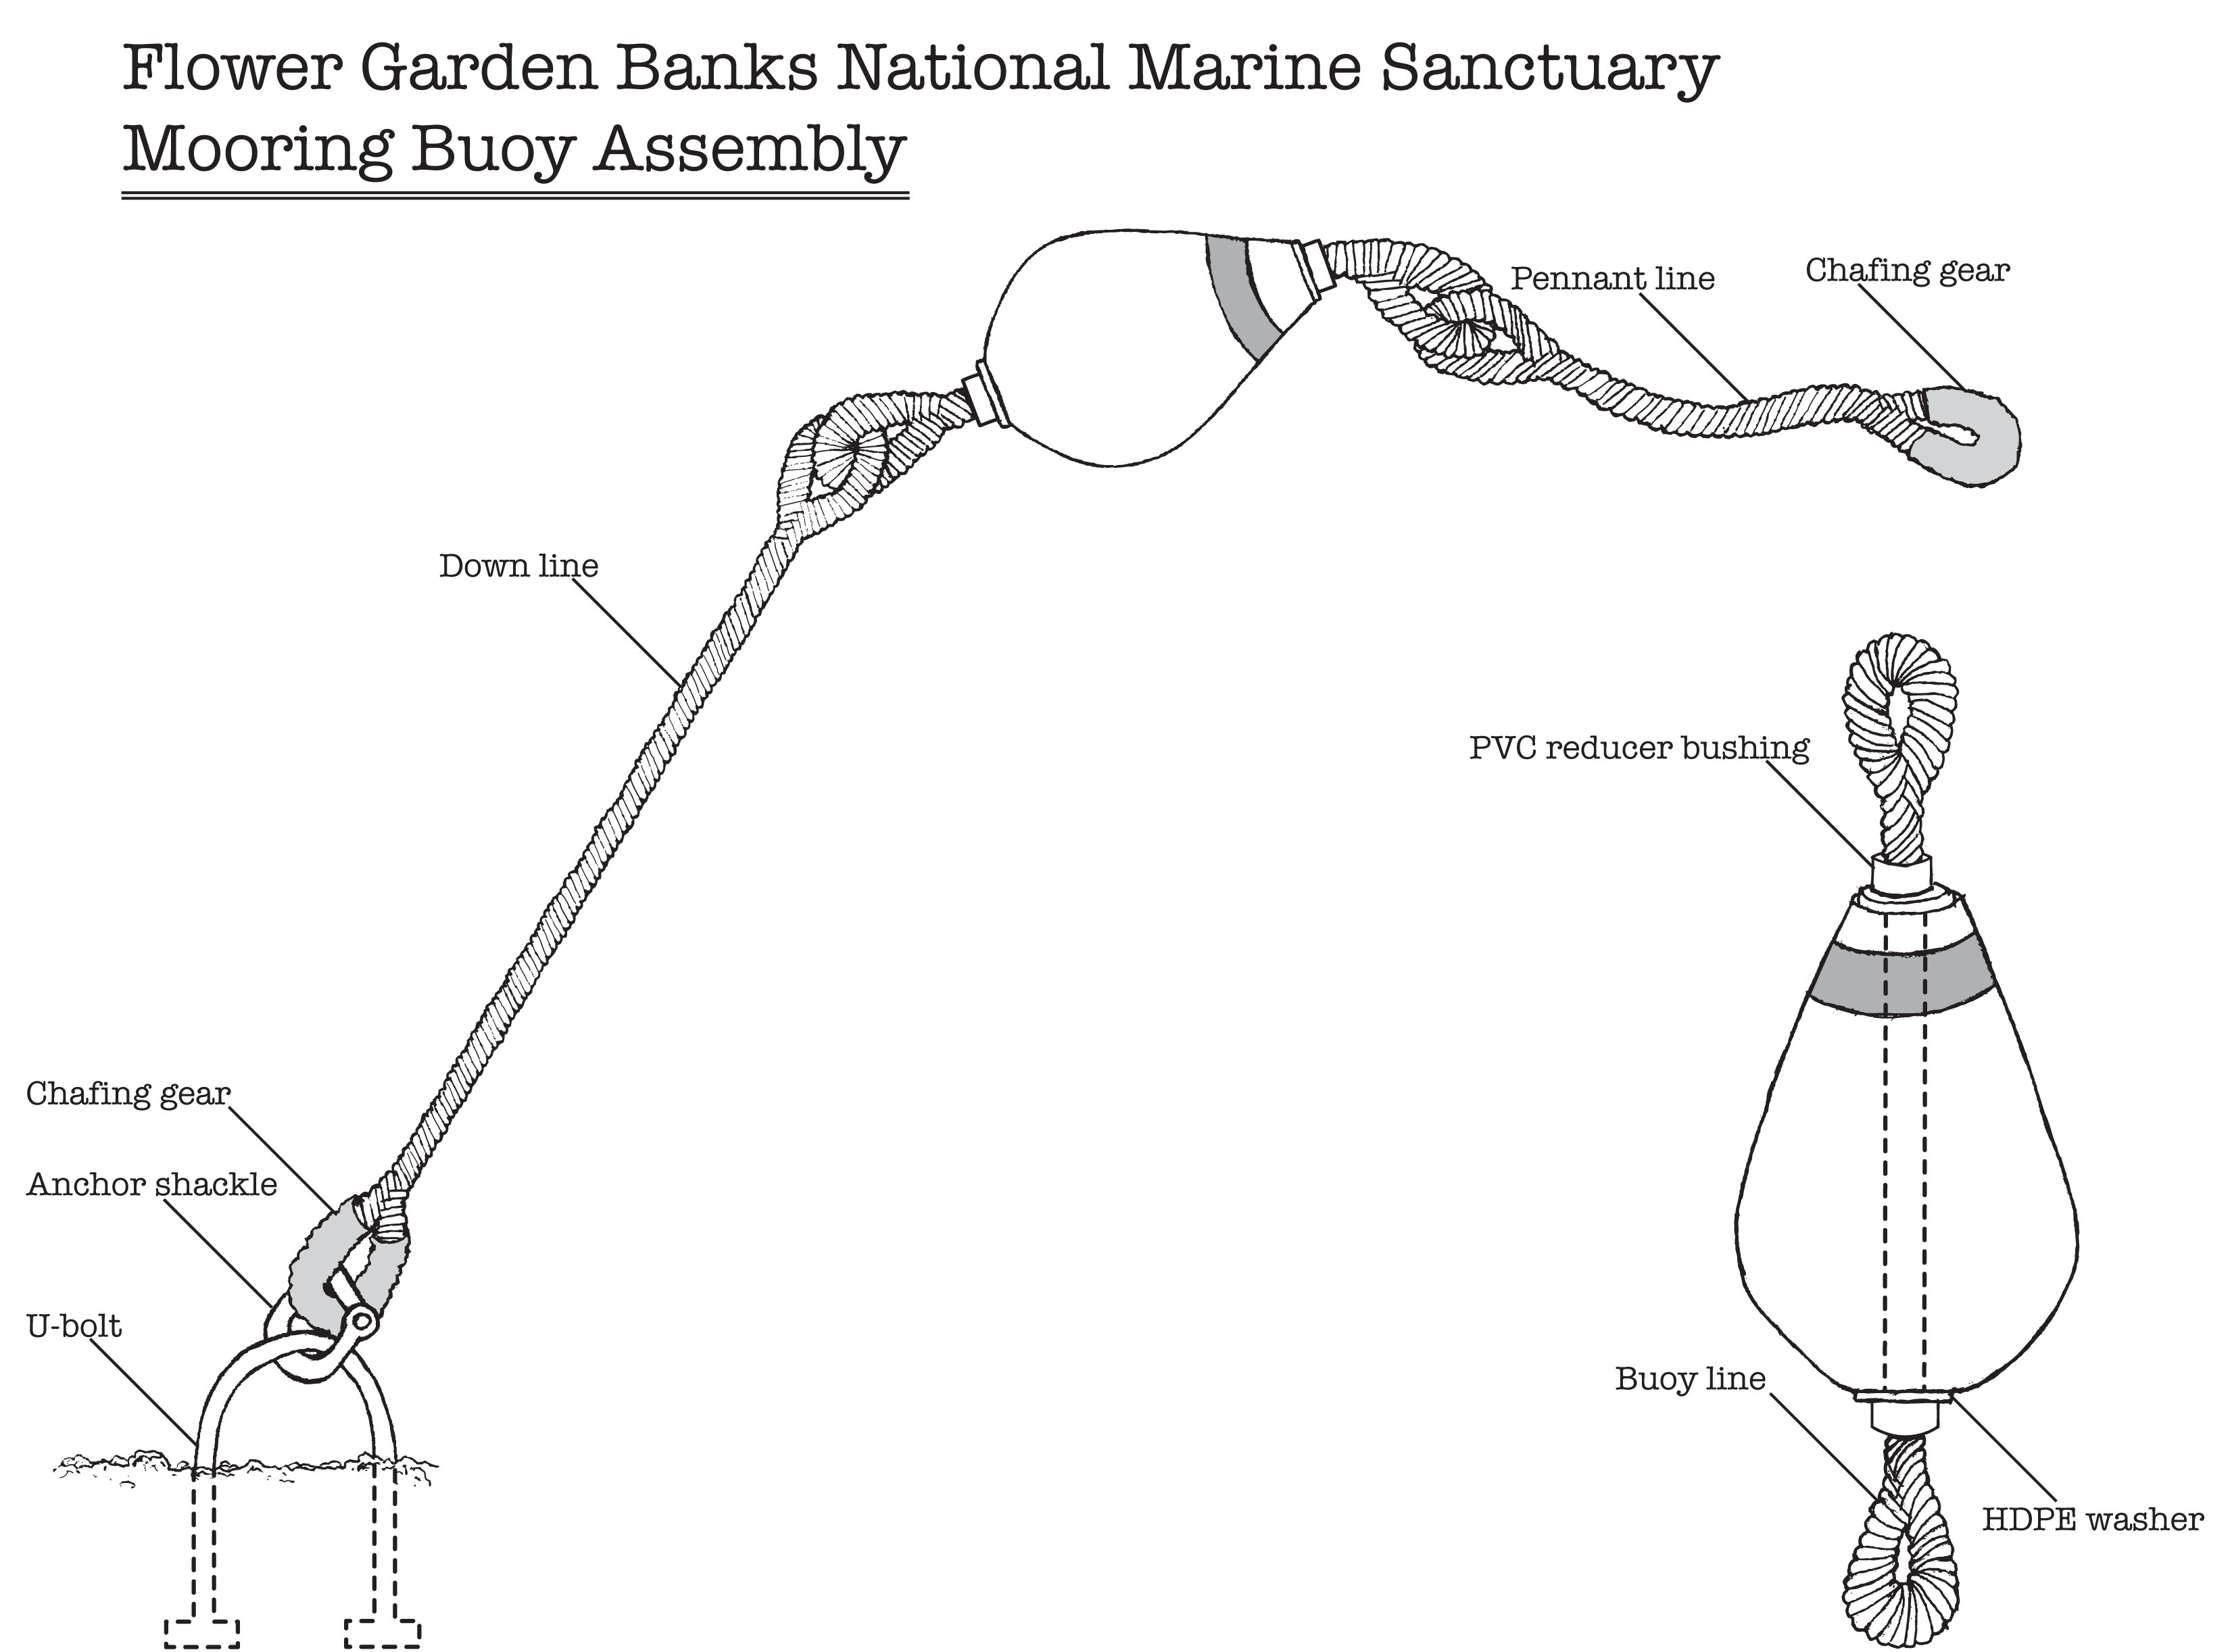 Flower Garden Banks National Marine Sanctuary Buoy And Boundary Coordinates